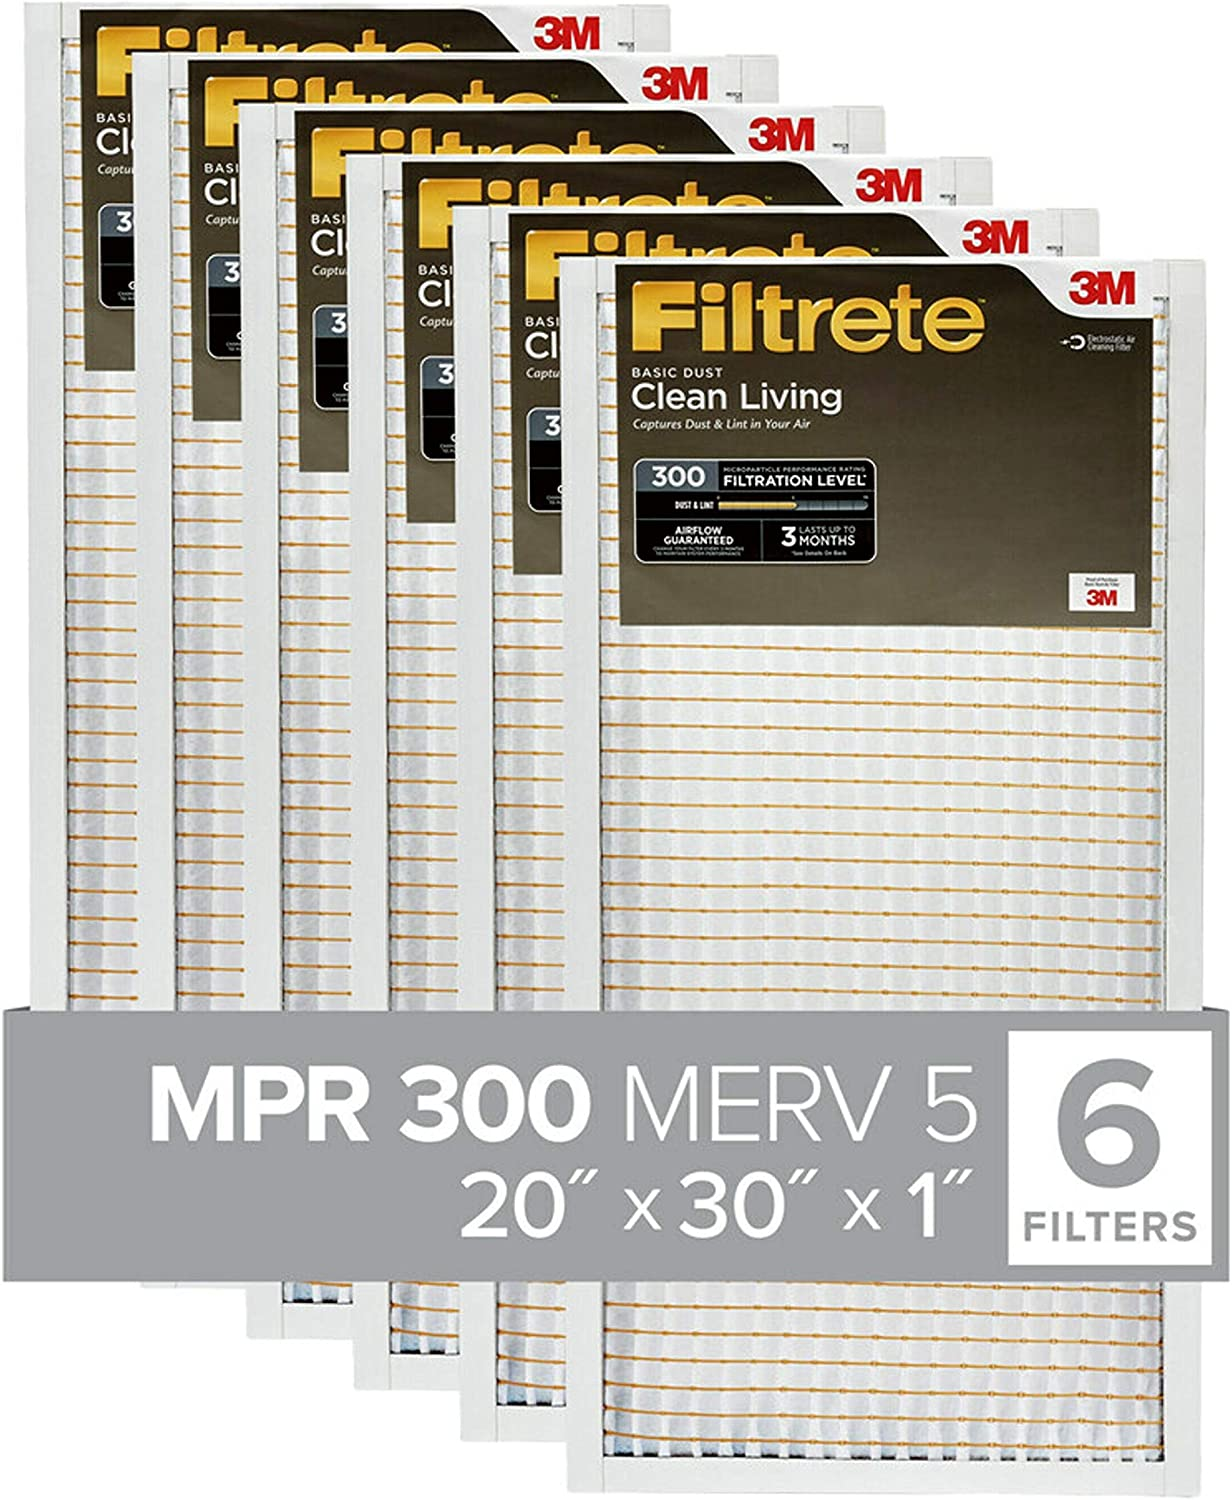 Filtrete 20x25x1 MPR 300 Clean Living Dust Reduction AC Furnace Air Filter 4Pack